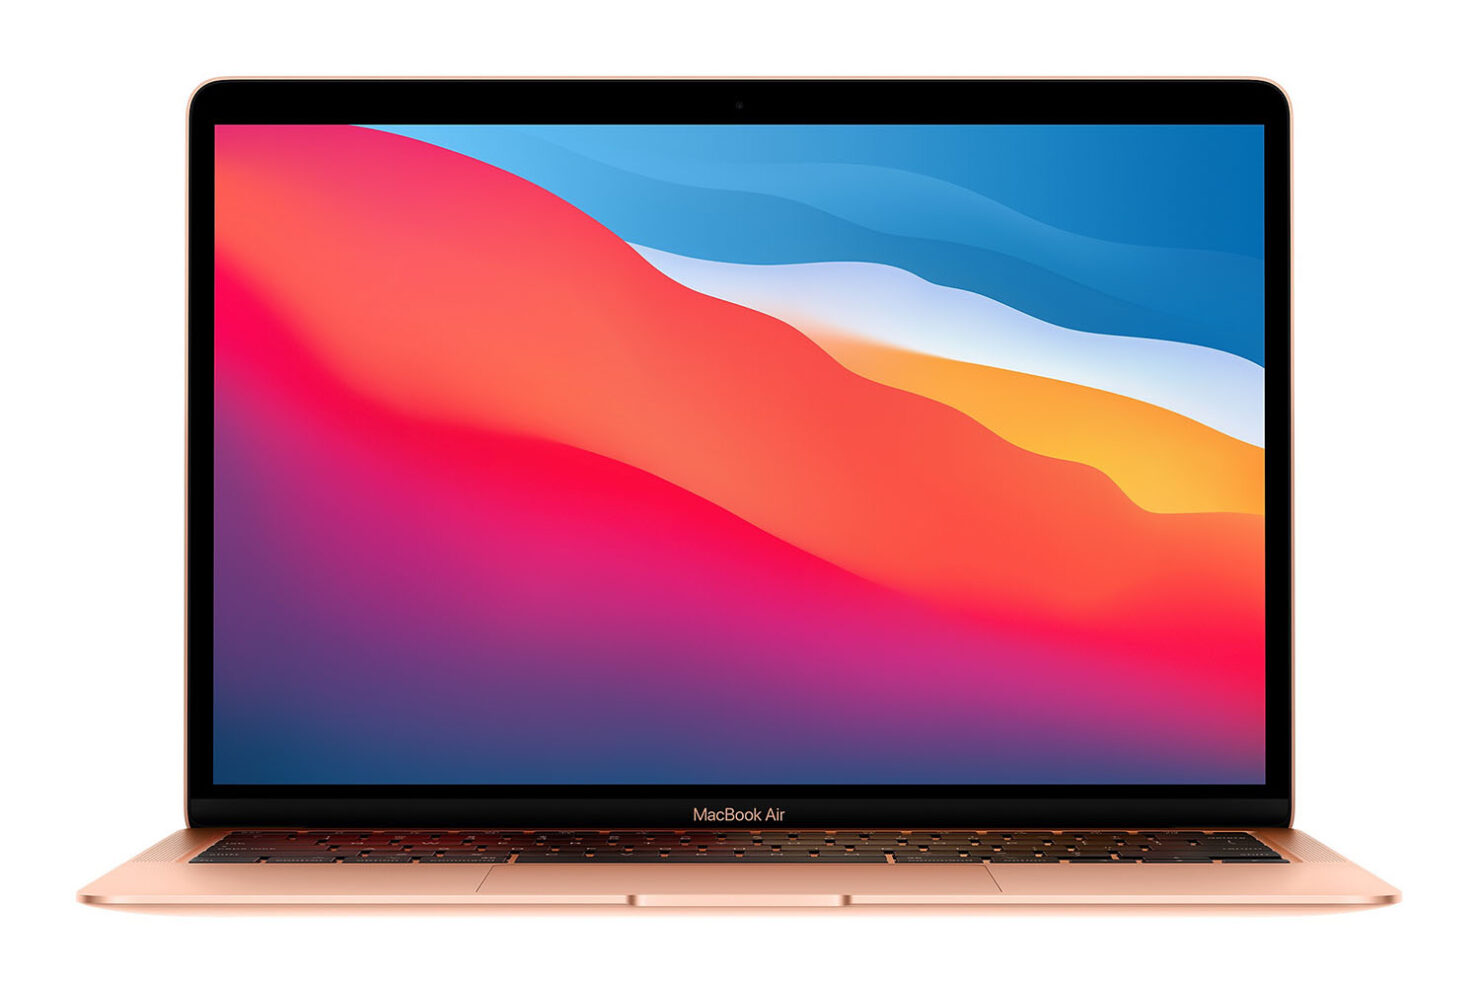 M1 MacBook Air Thrashes a Core i9-Powered 16-inch MacBook Pro in the Latest Benchmark Results